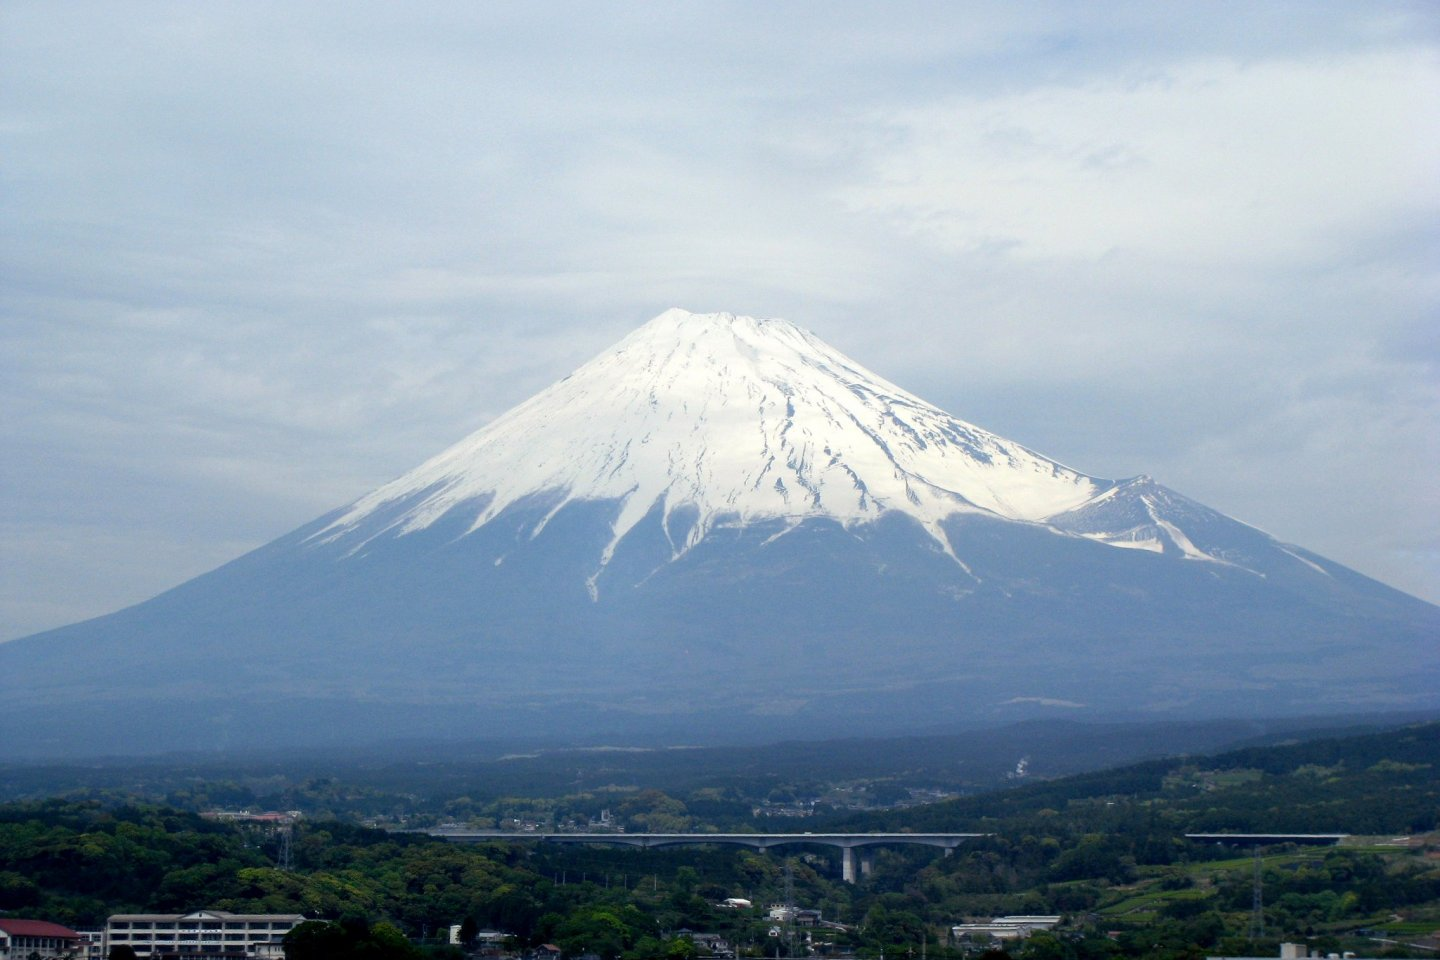 A Mt. Fuji photo taken from the shinkansen